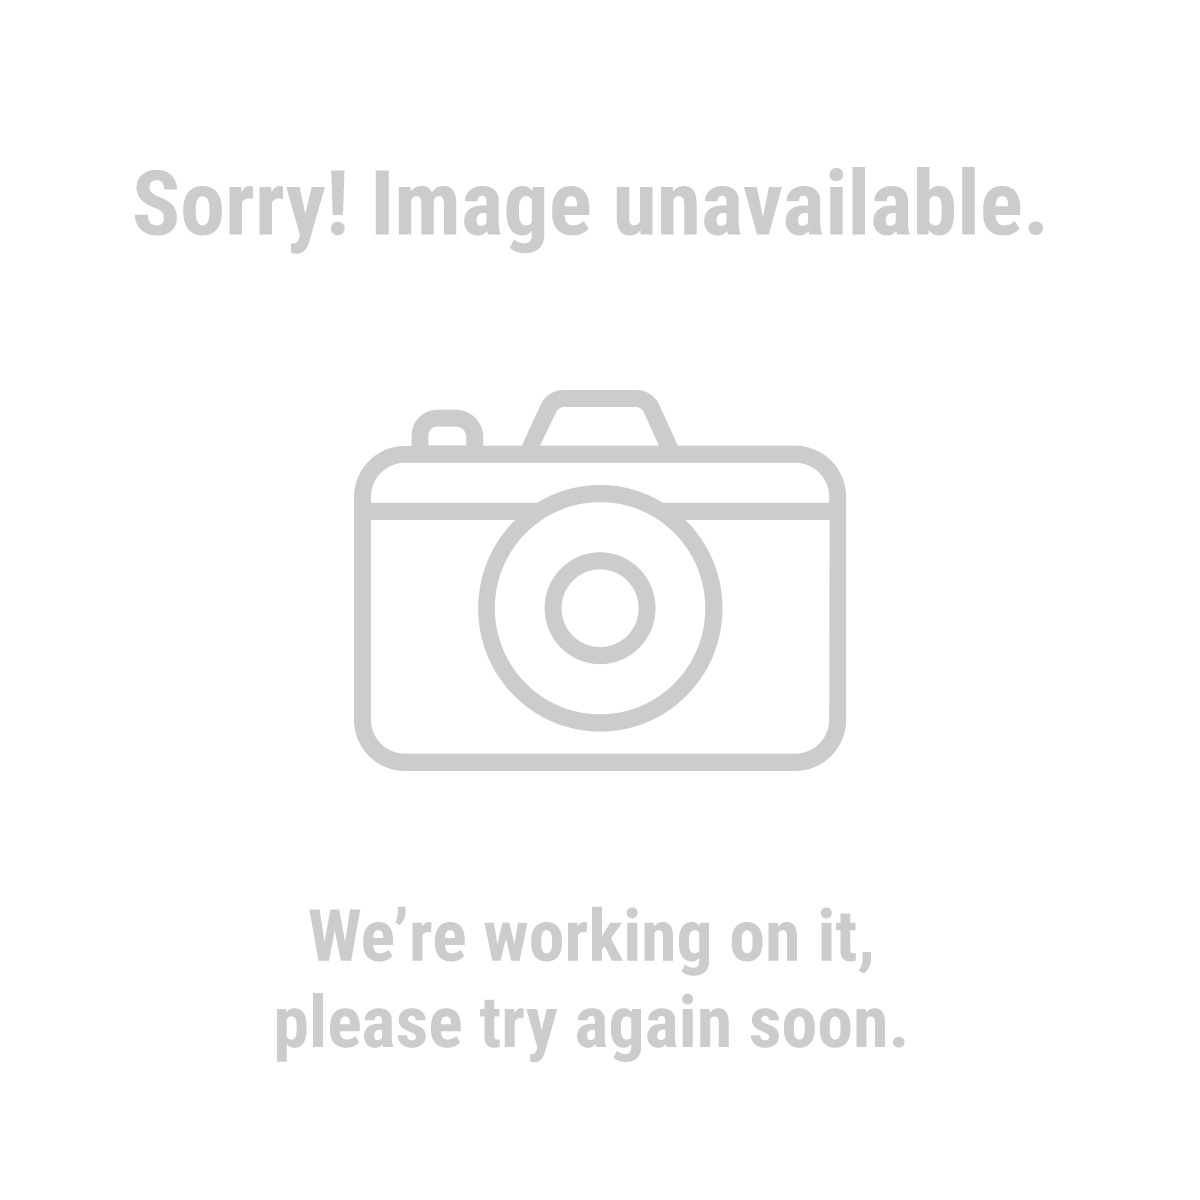 "Haul-Master® 67469 13-5/32"" x 3-7/16""  Flatfree Tire"